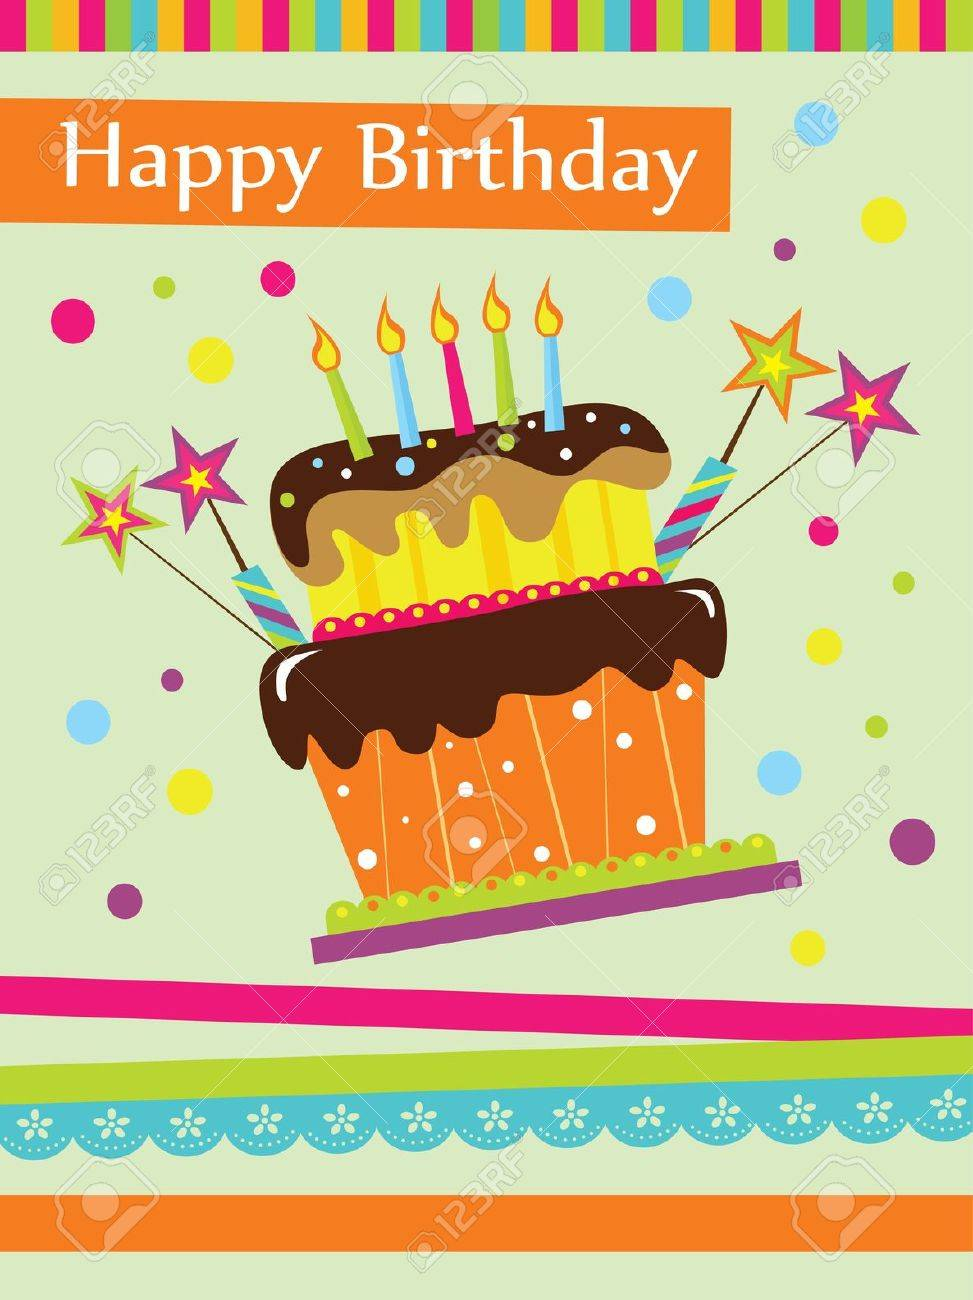 Fabulous Happy Birthday Cake Card Design Vector Illustration Royalty Free Funny Birthday Cards Online Fluifree Goldxyz